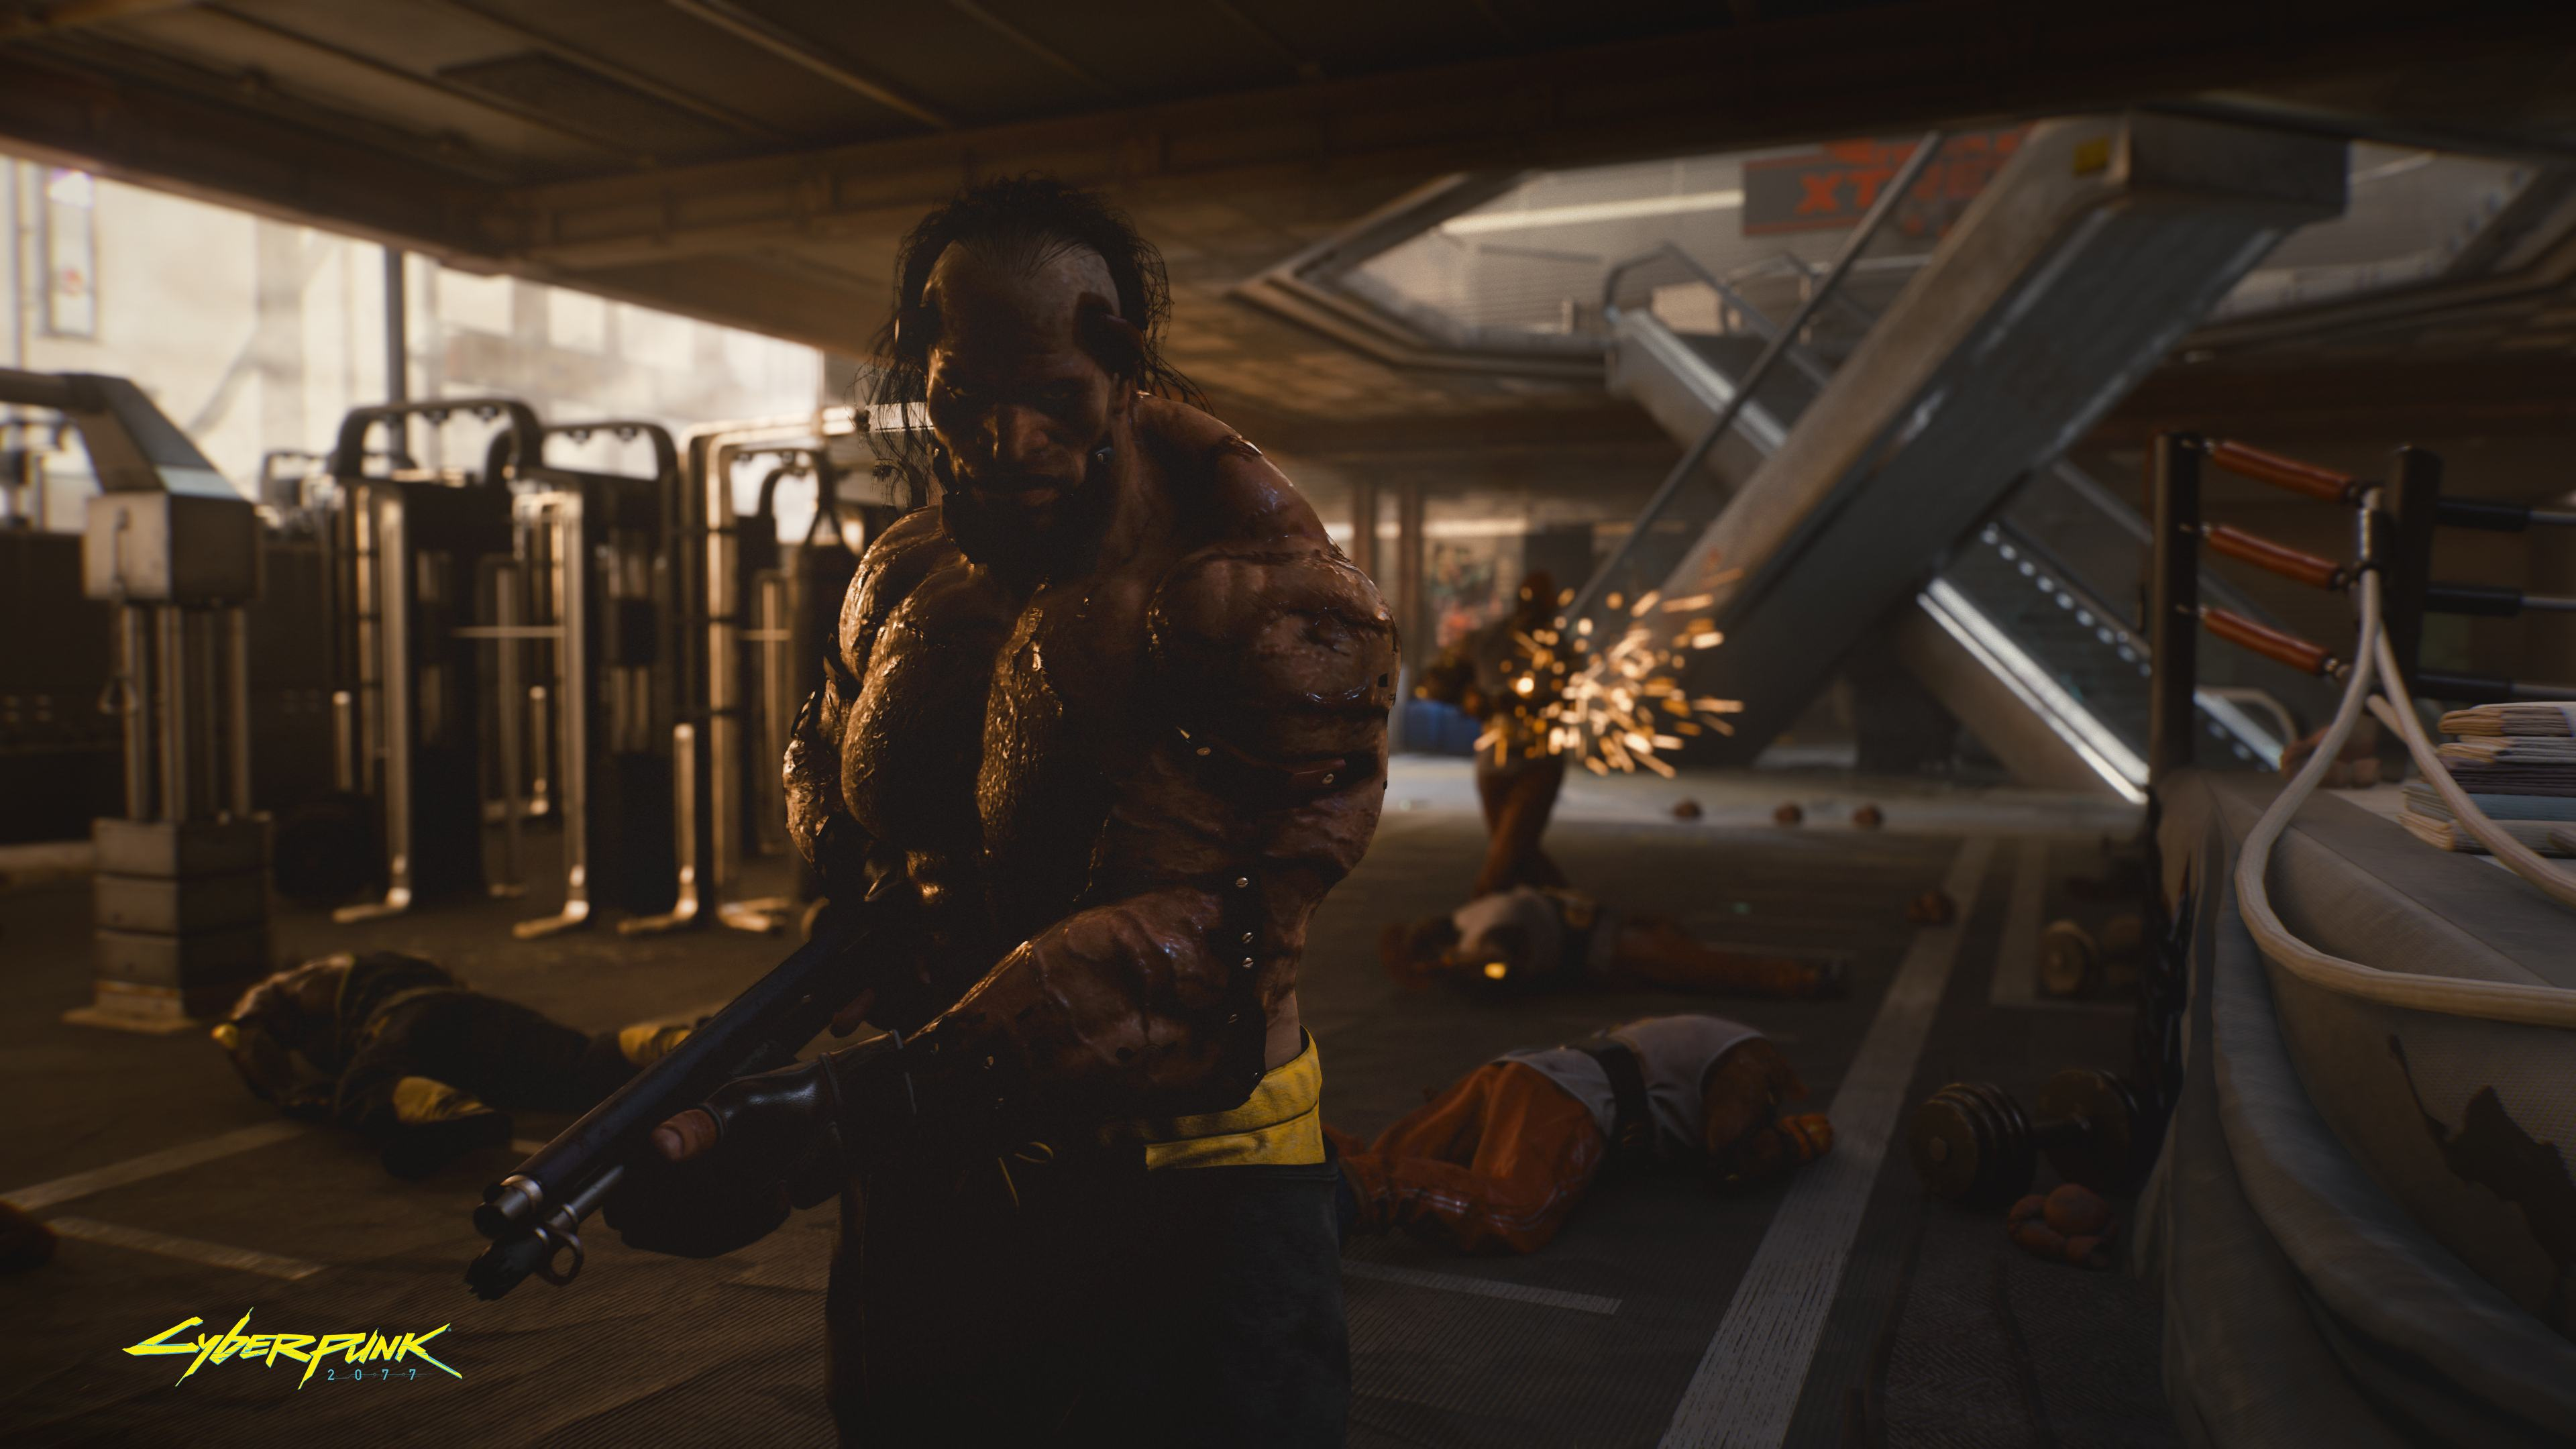 General 3840x2160 Cyberpunk 2077 video games screen shot Animals (Cyberpunk 2077 Faction)